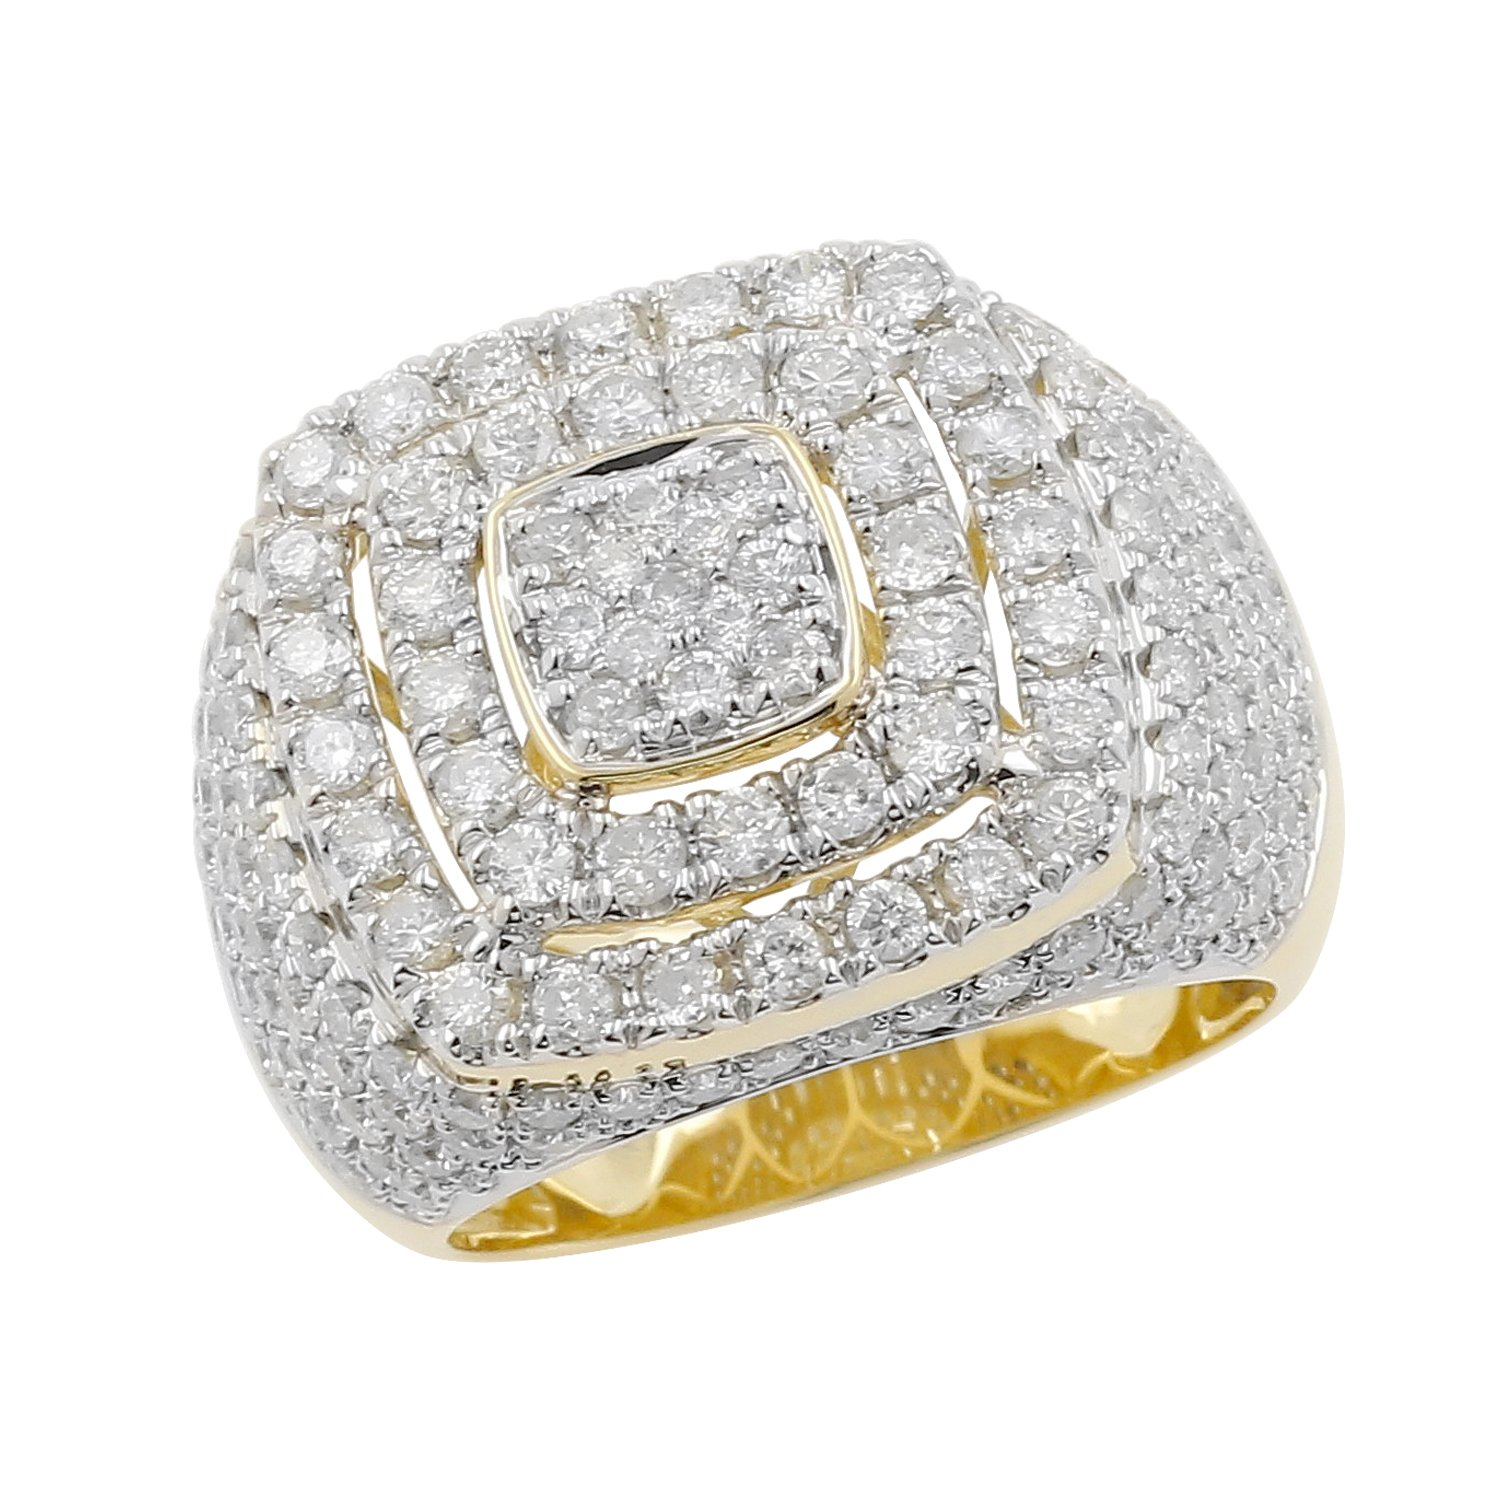 4.15 Carat 10kt Yellow Gold Diamond Cluster Men's Statement Pinky Ring by Isha Luxe-Mens Collection (Image #4)